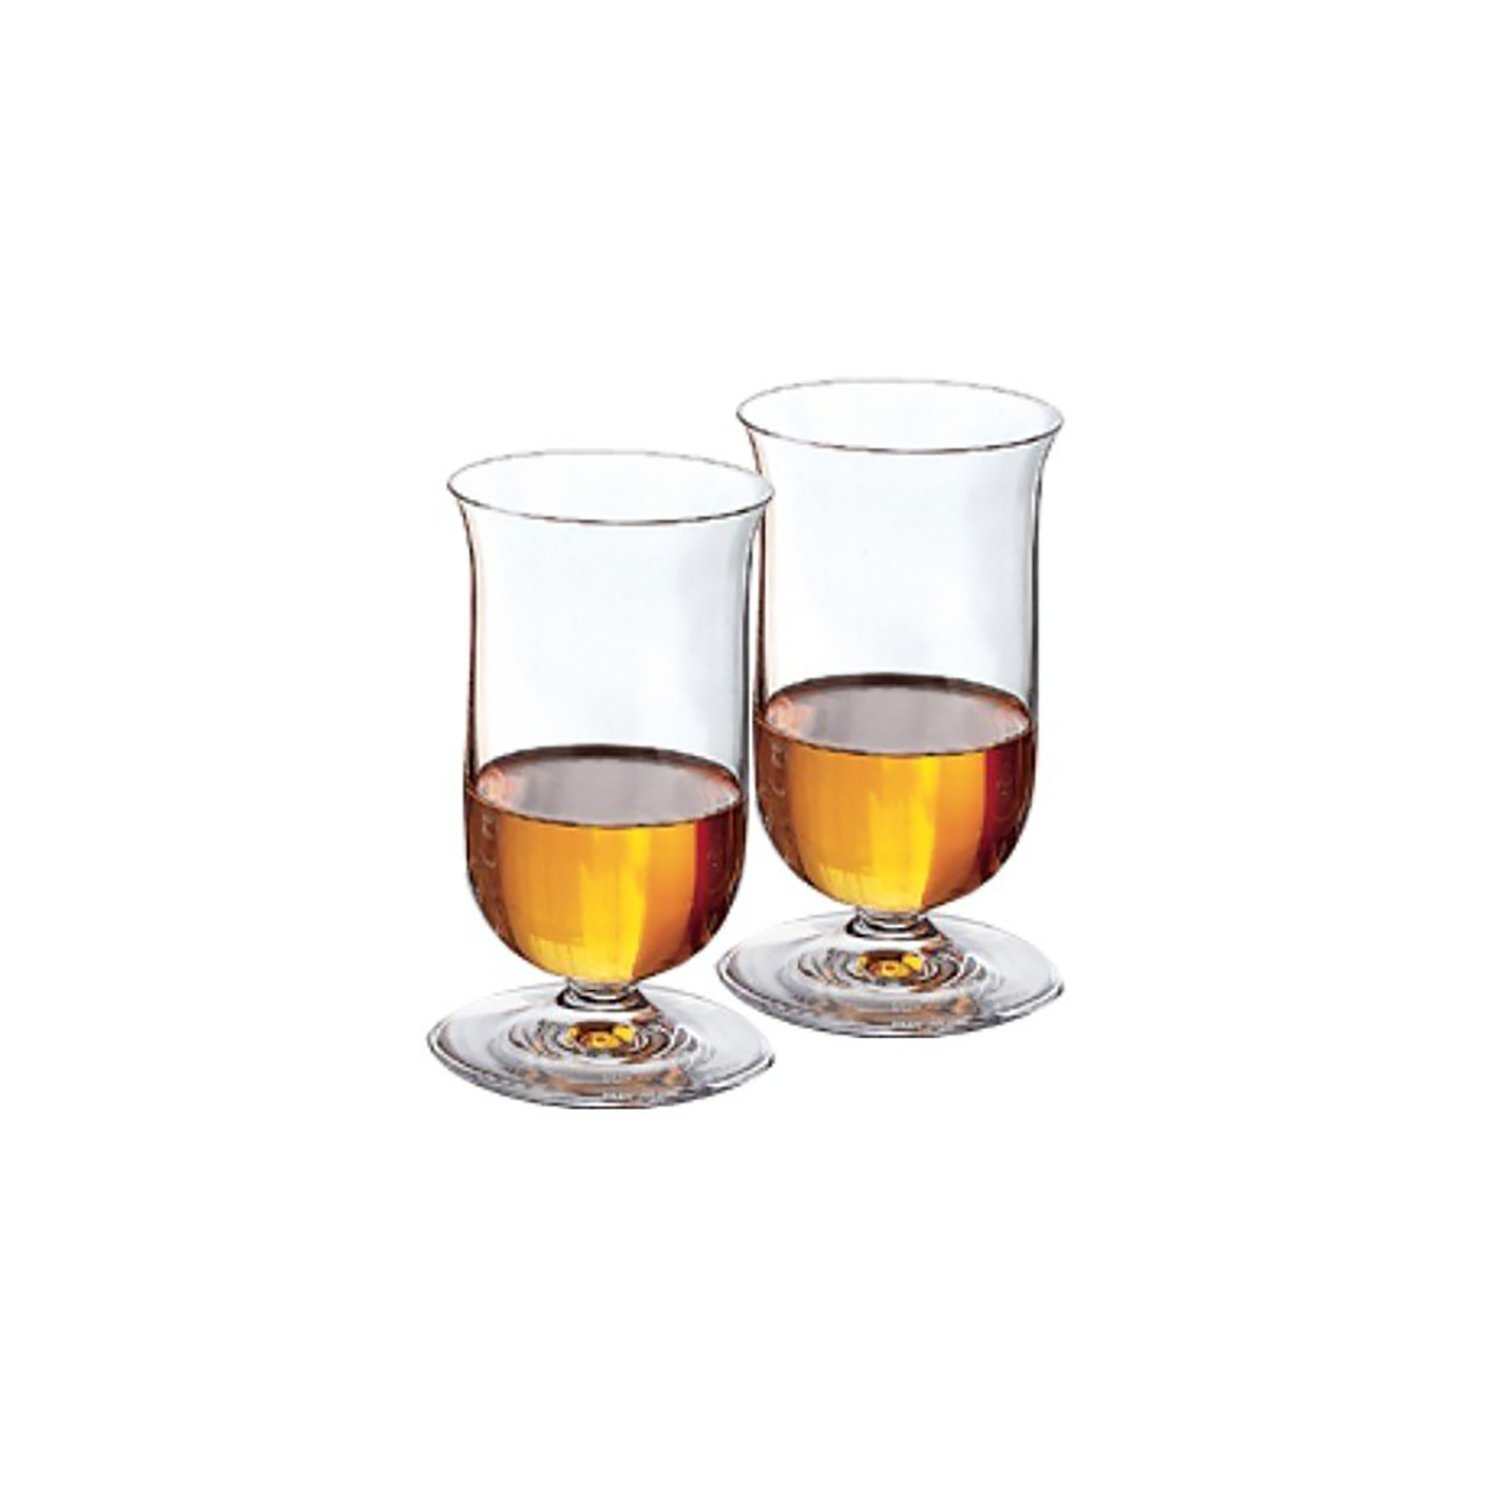 Riedel 6416/80 VINUM Whisky Glass, Set of 2, Clear